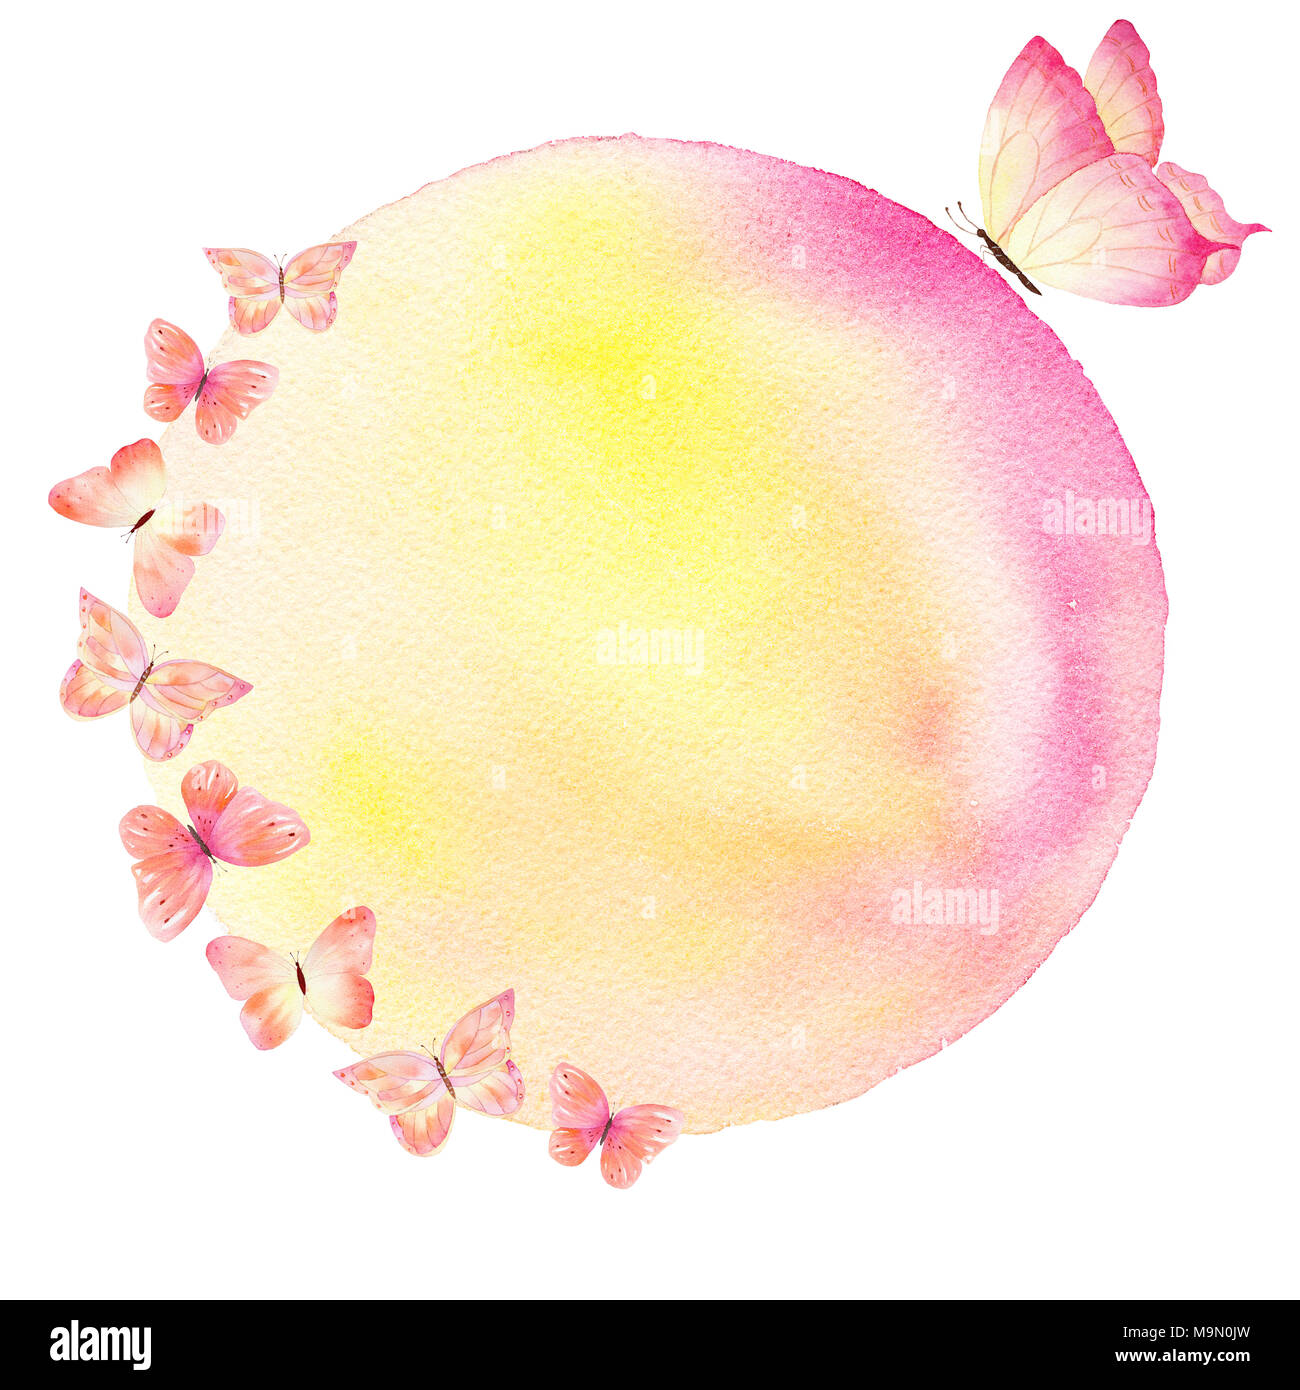 Watercolor Handmade Colorful Background With Butterflies Can Be